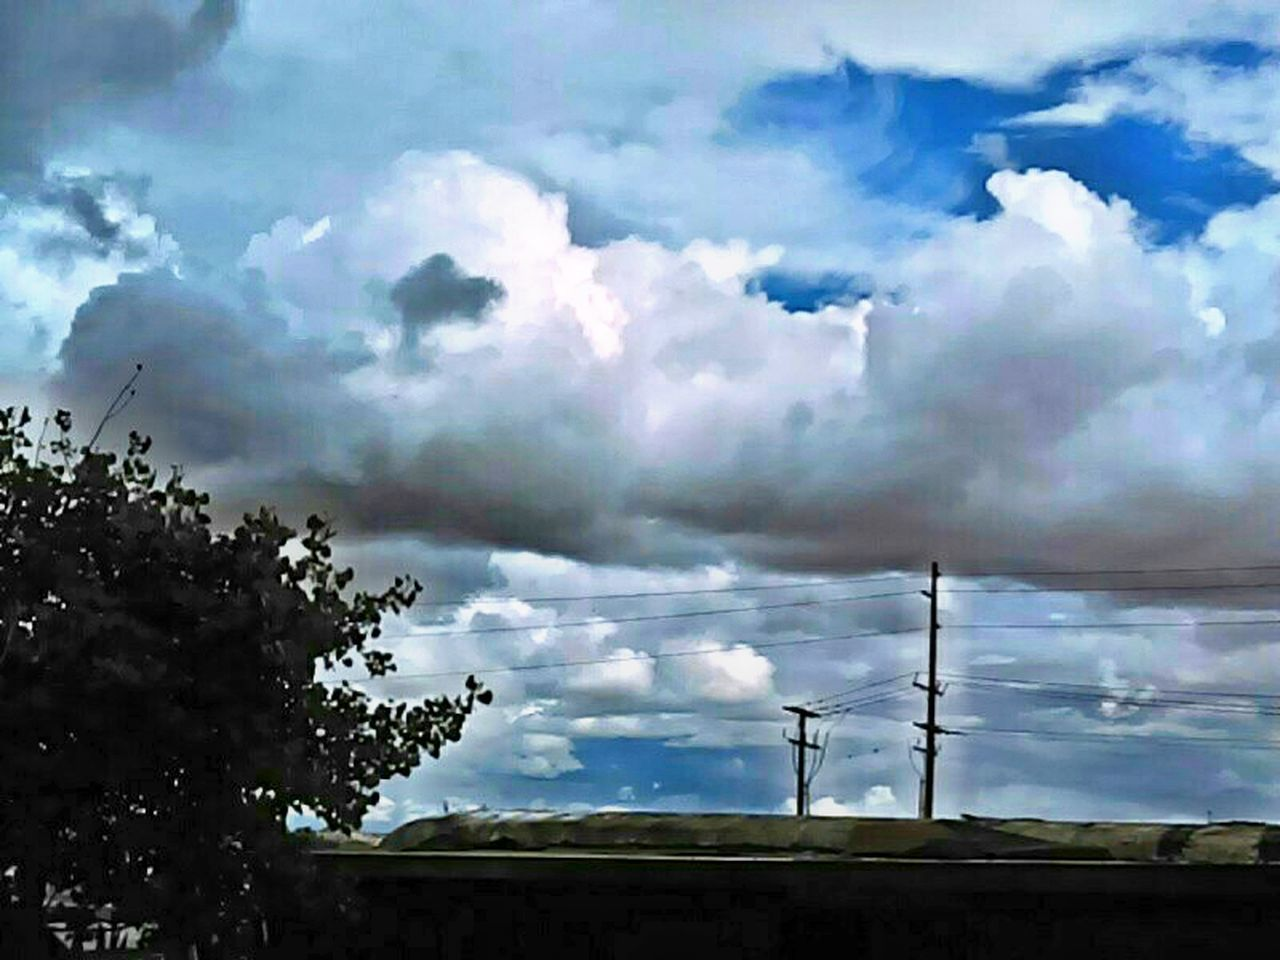 cloud - sky, sky, no people, day, low angle view, nature, outdoors, tree, beauty in nature, scenics, technology